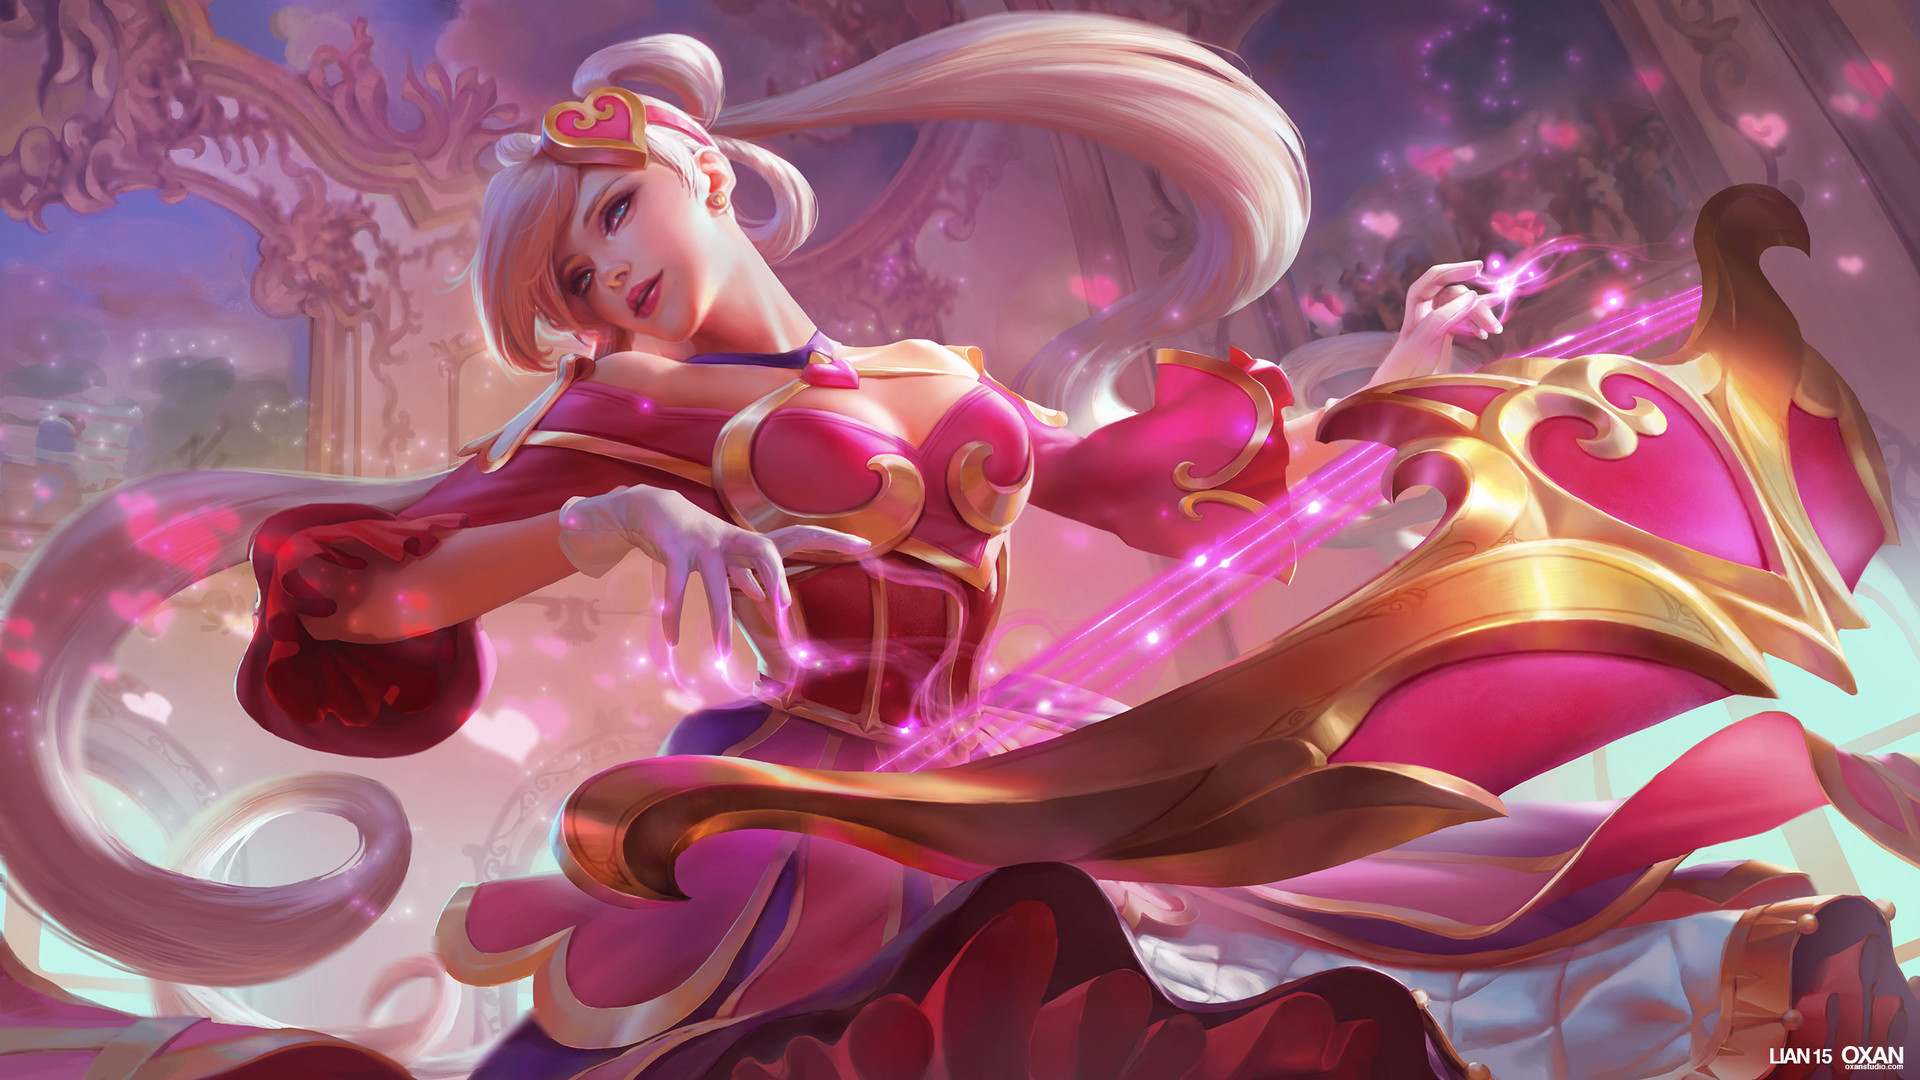 Artstation - Sweetheart Sona - League Of Legends Splash -8747